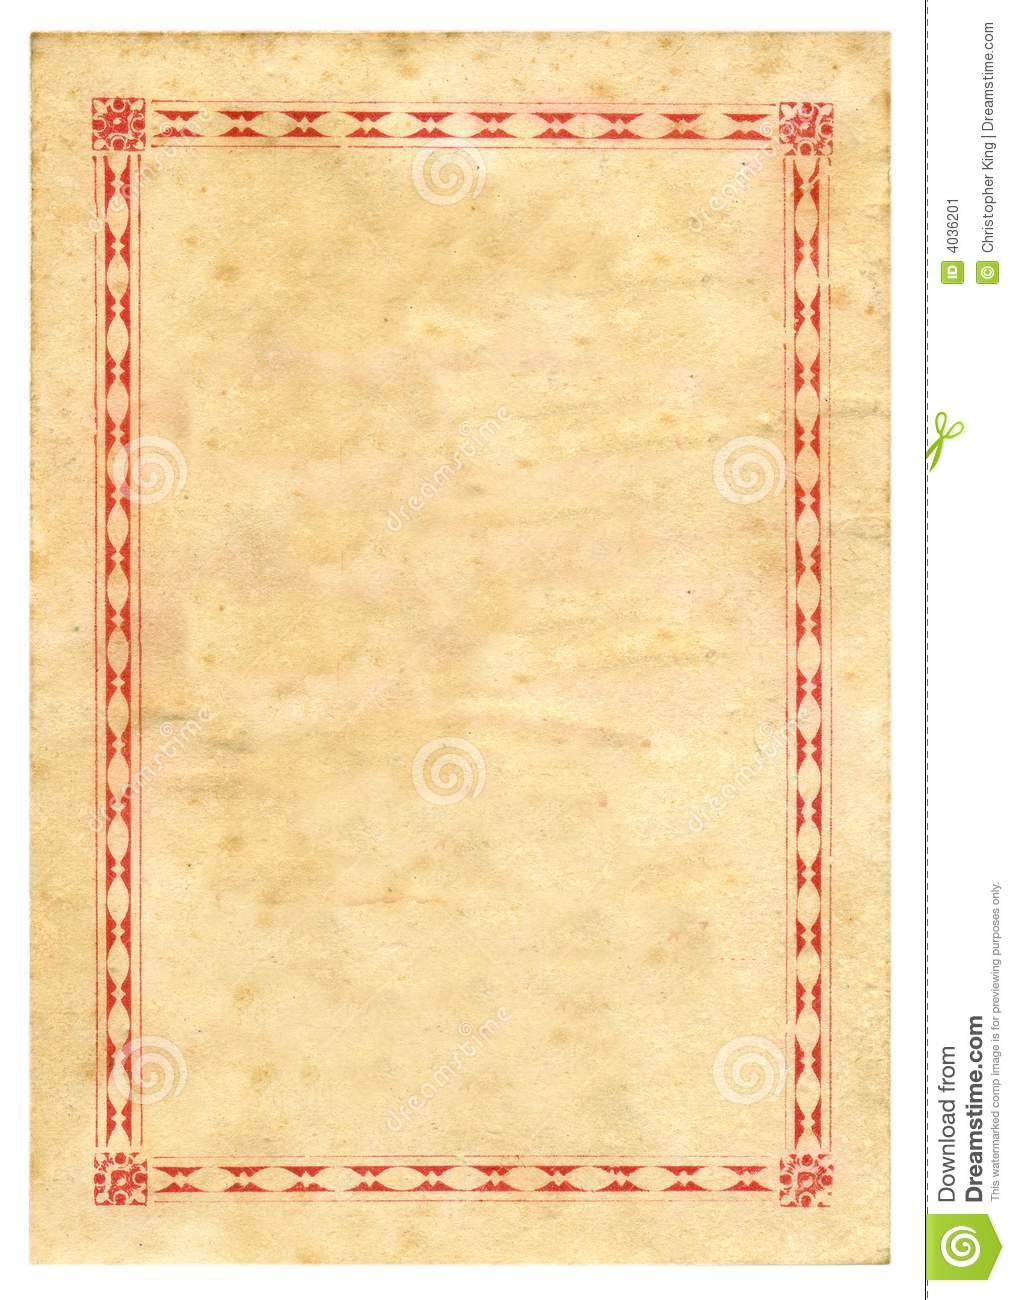 Vintage Prize Certificate Paper Texture Background Stock Image - Image ...